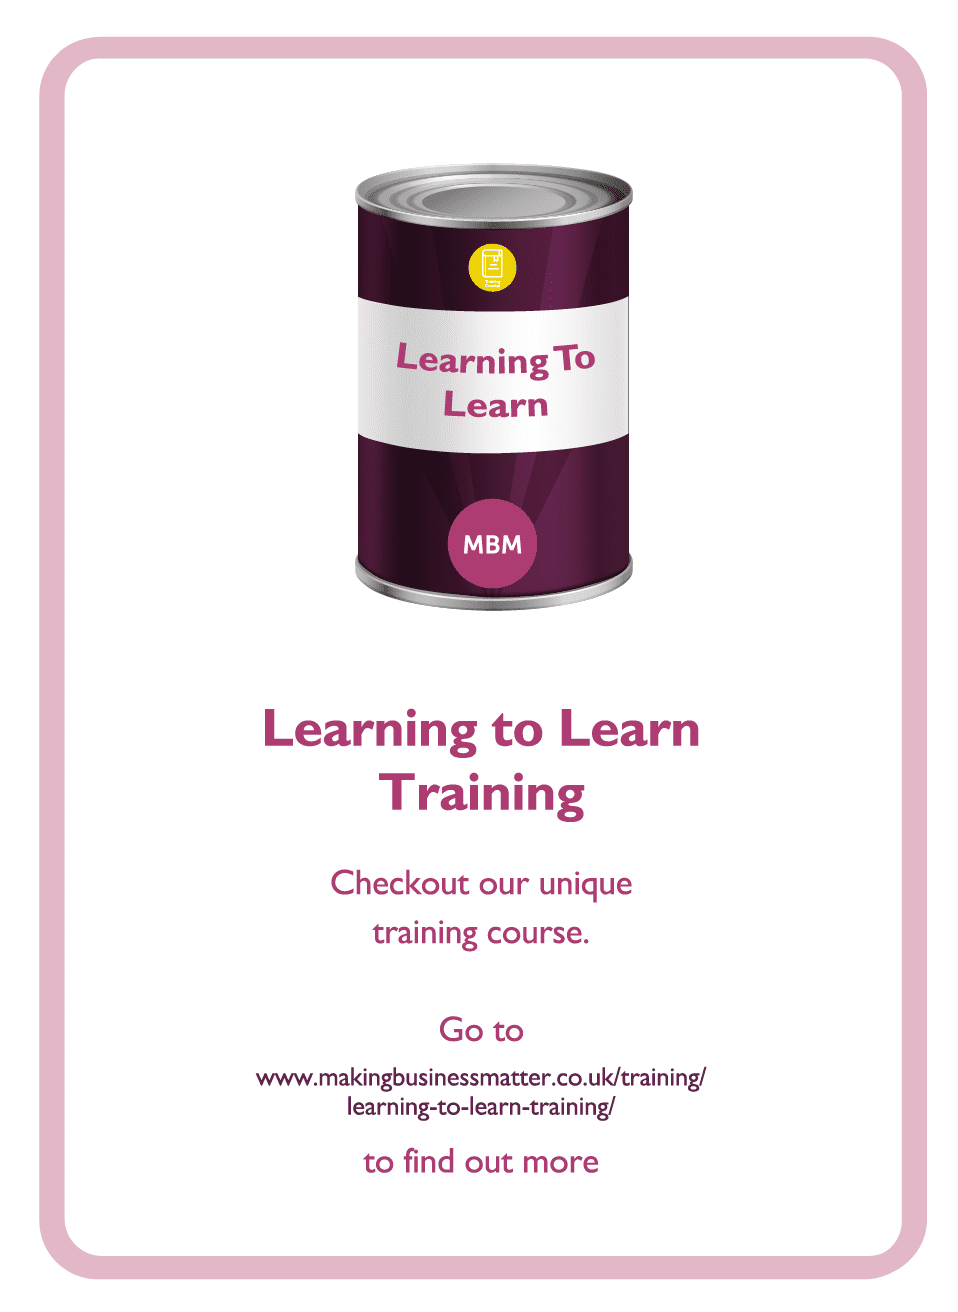 Learning to Learn coaching card titled Learning to Learn